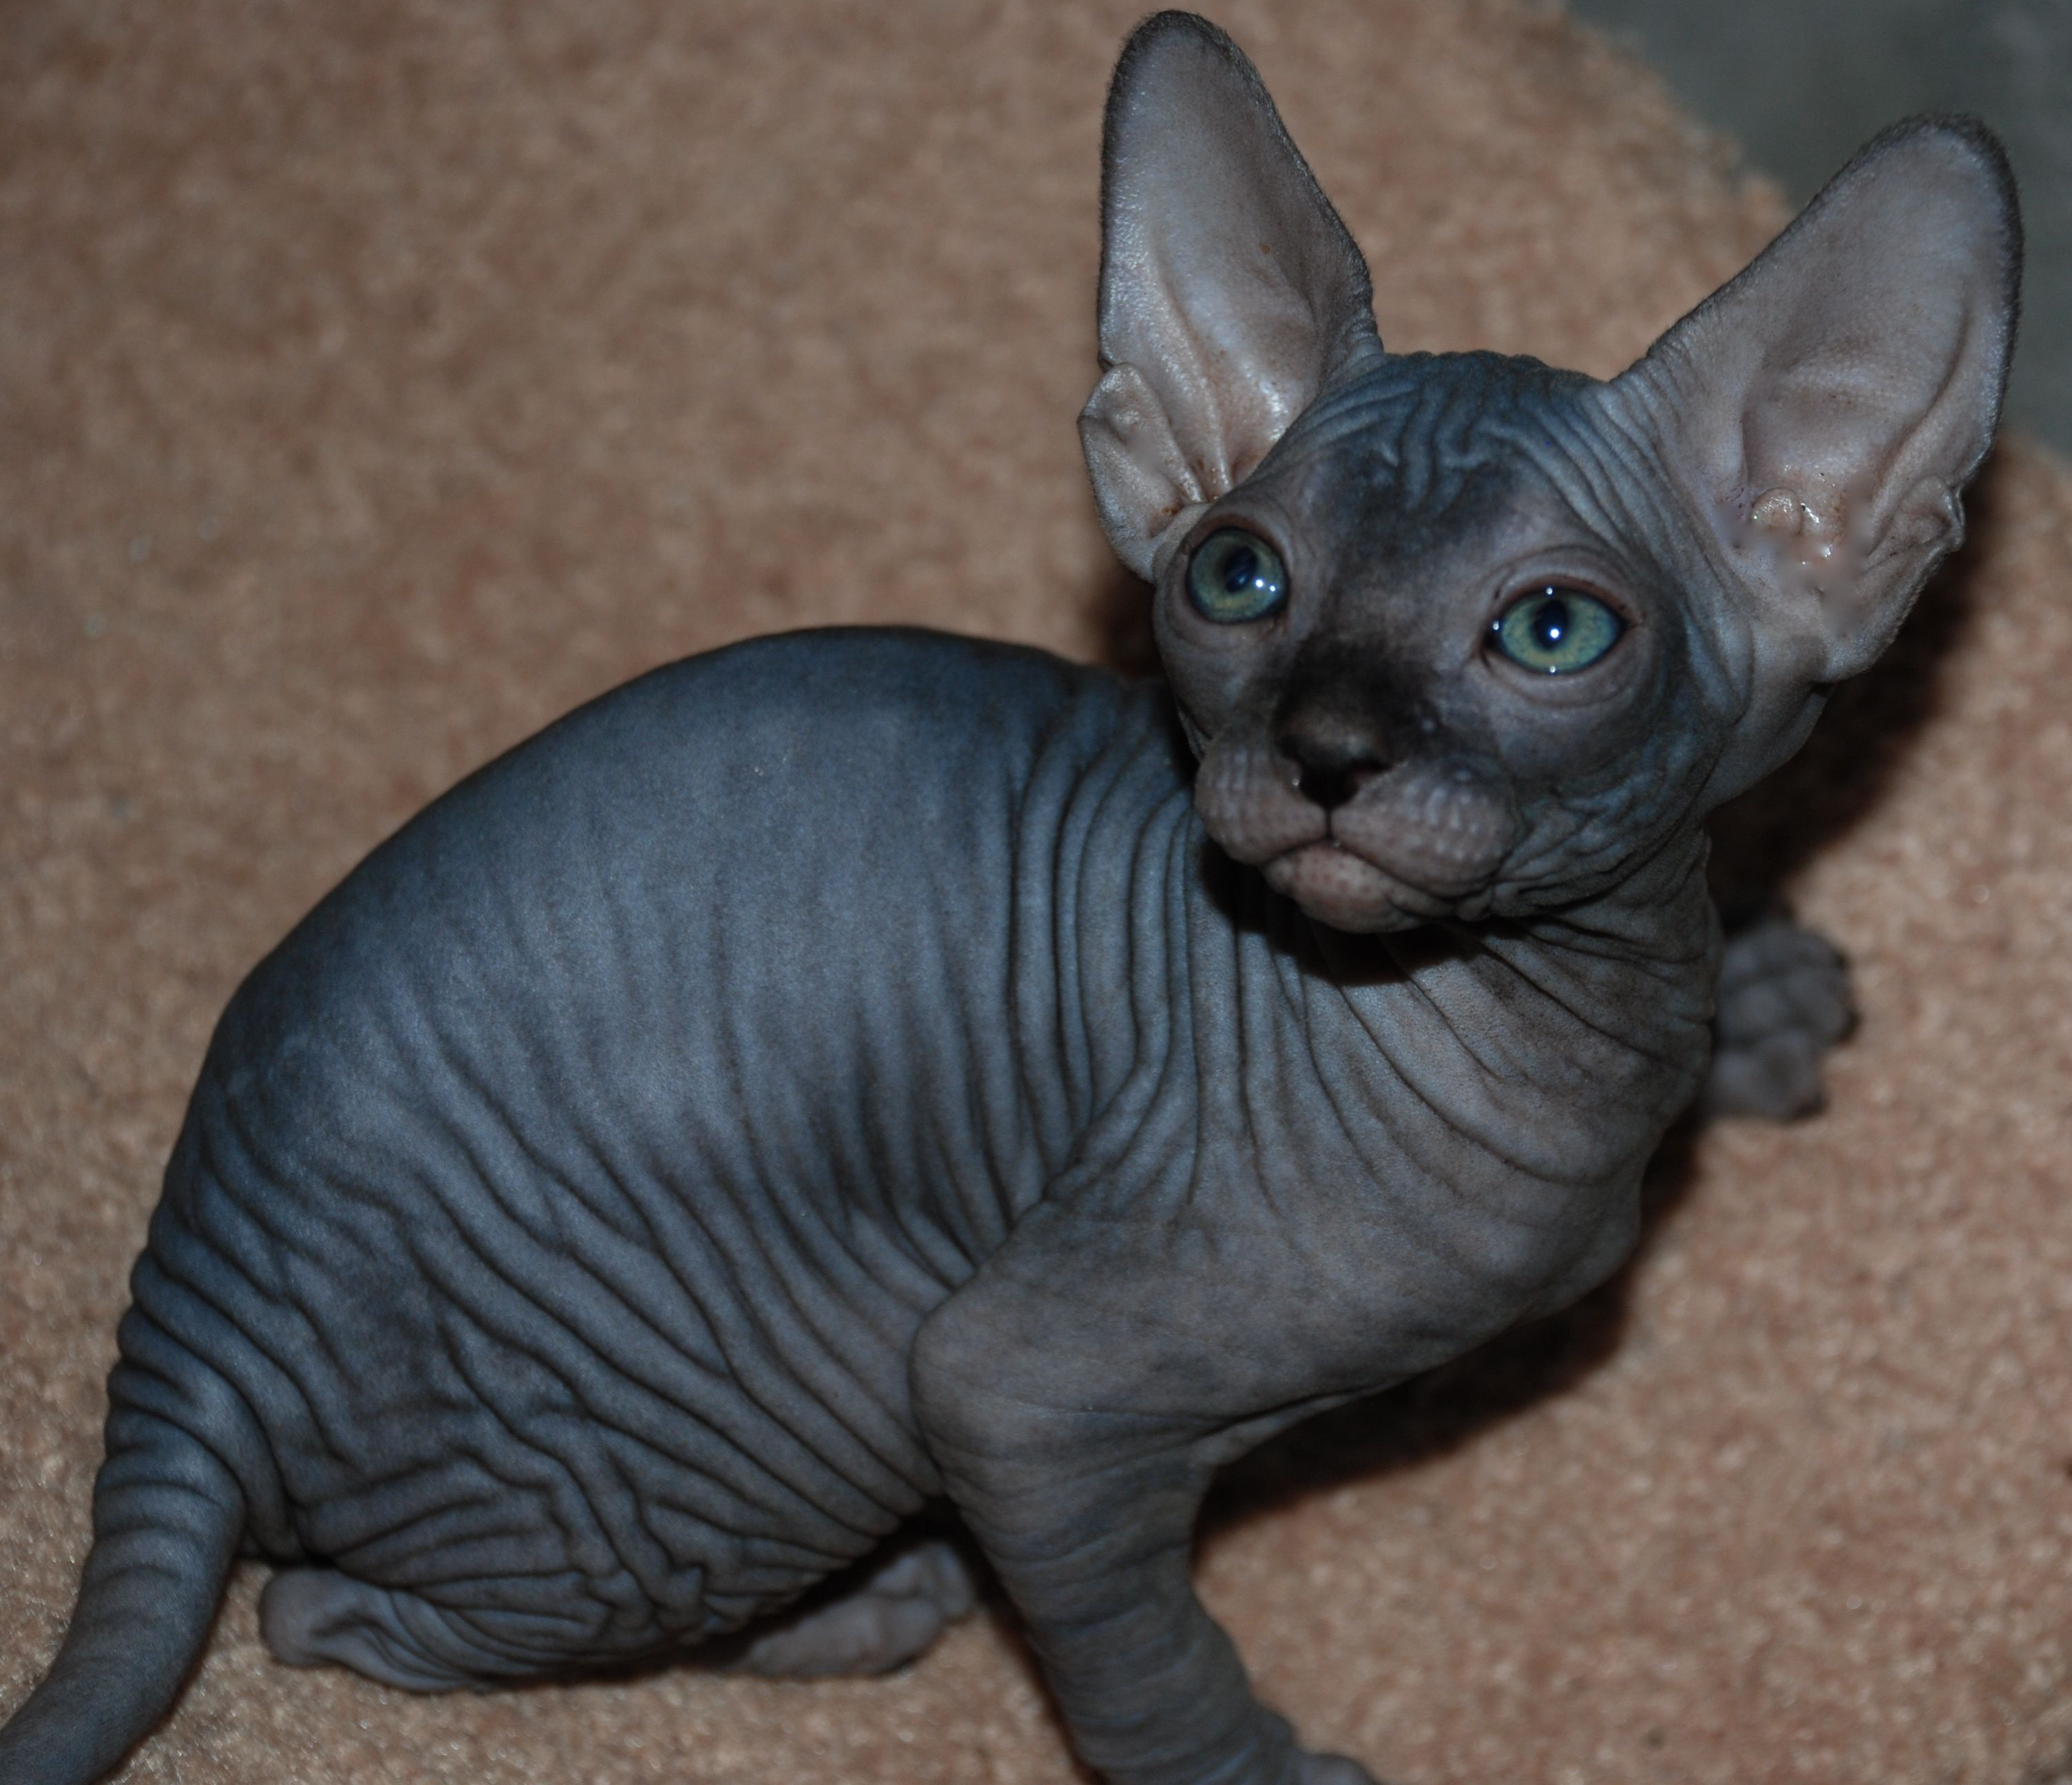 Sphynx Breeder Sphynx Pictures Hairless Cats Sphynx Cats N O C O A T K I T T Y Cute Hairless Cat Hairless Cat Hairless Cat Kittens